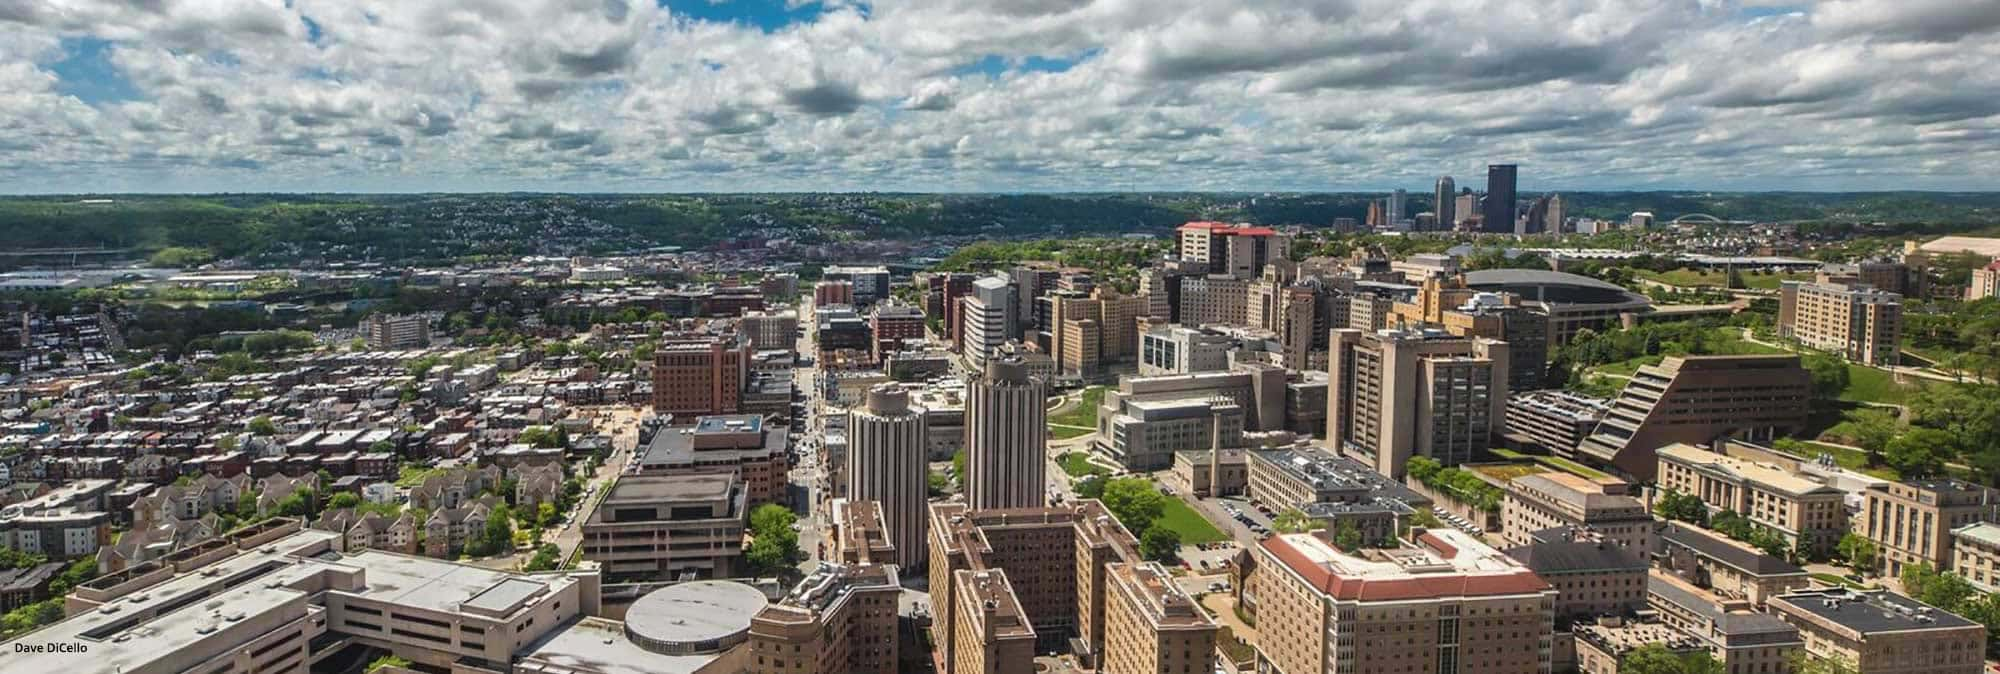 City Of Pittsburgh Announcements Special Events Press Releases